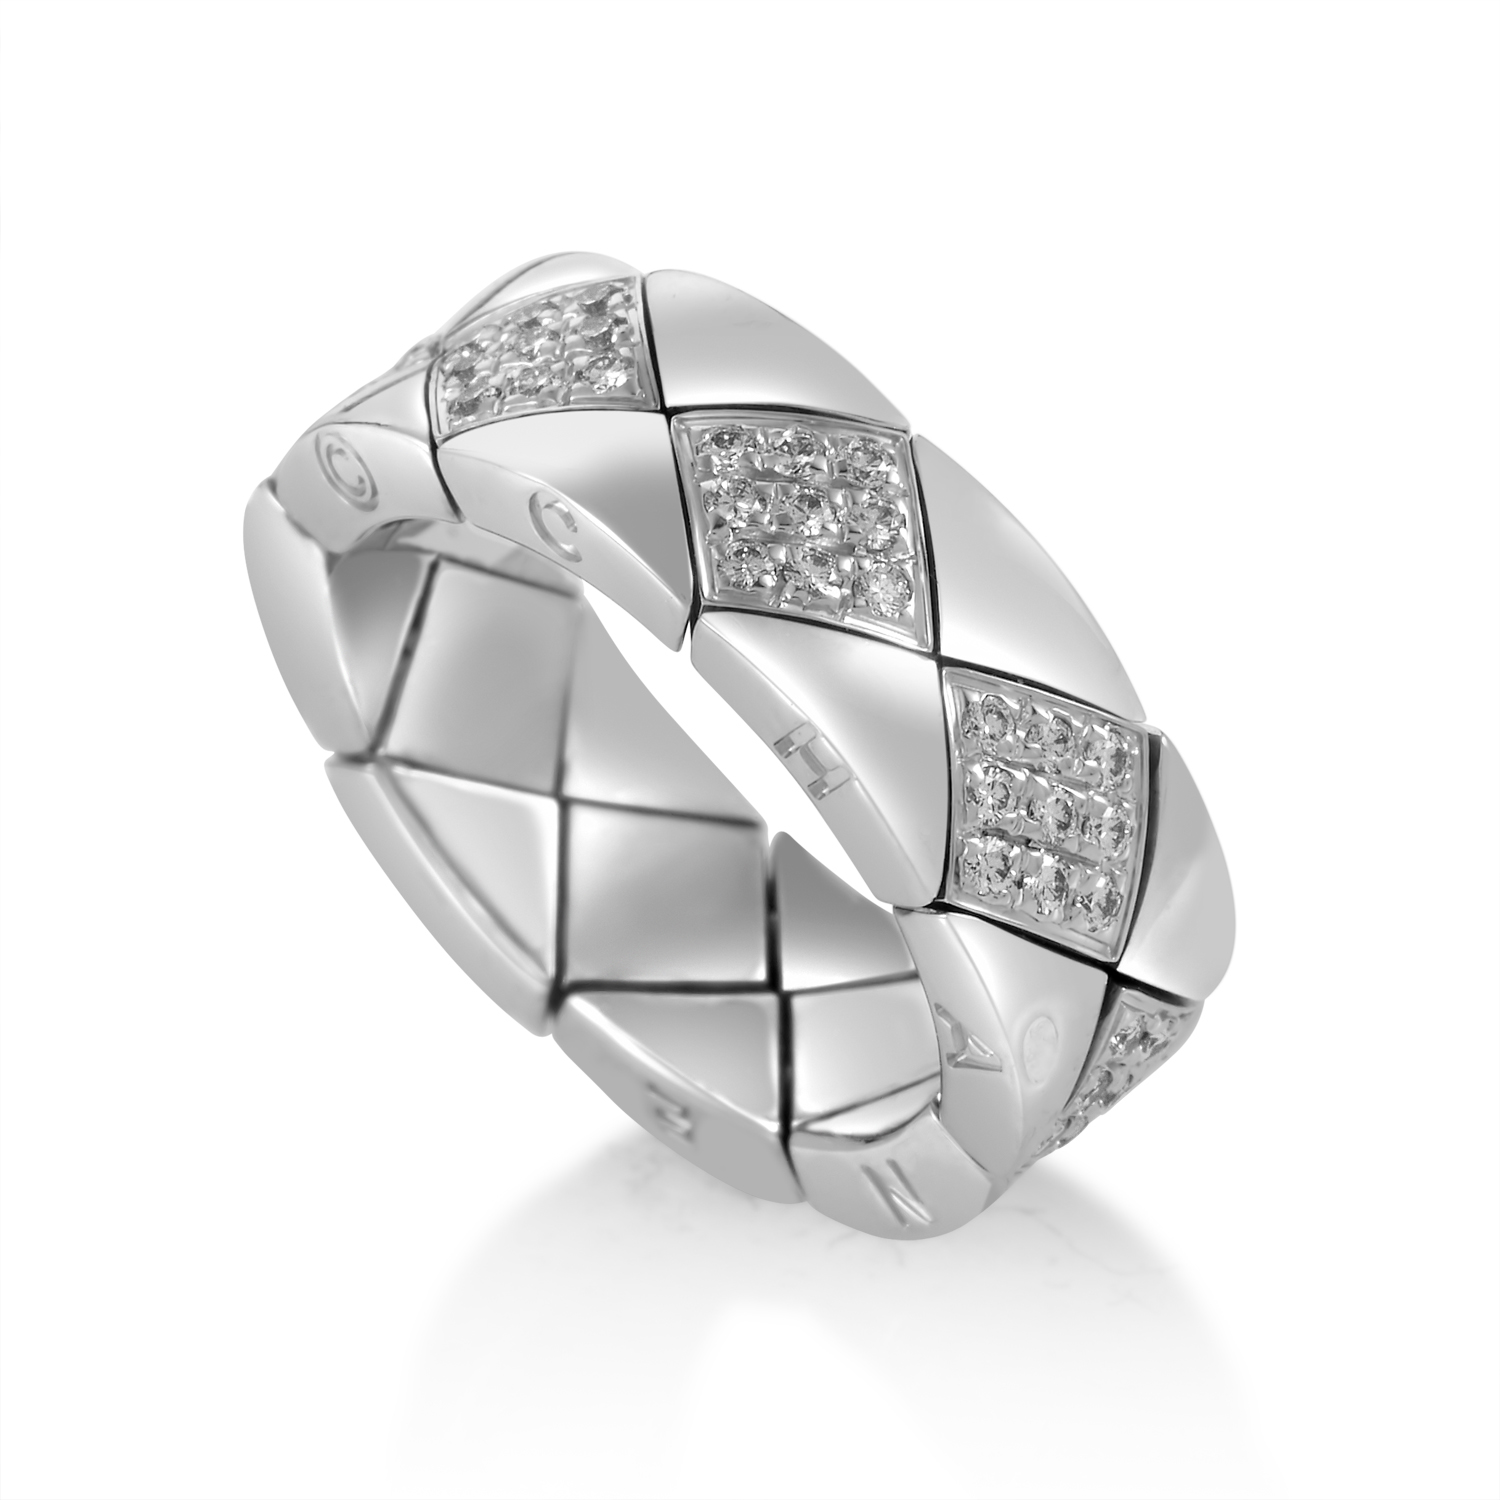 Chanel Matelasse 18K White Gold Diamond Band Ring